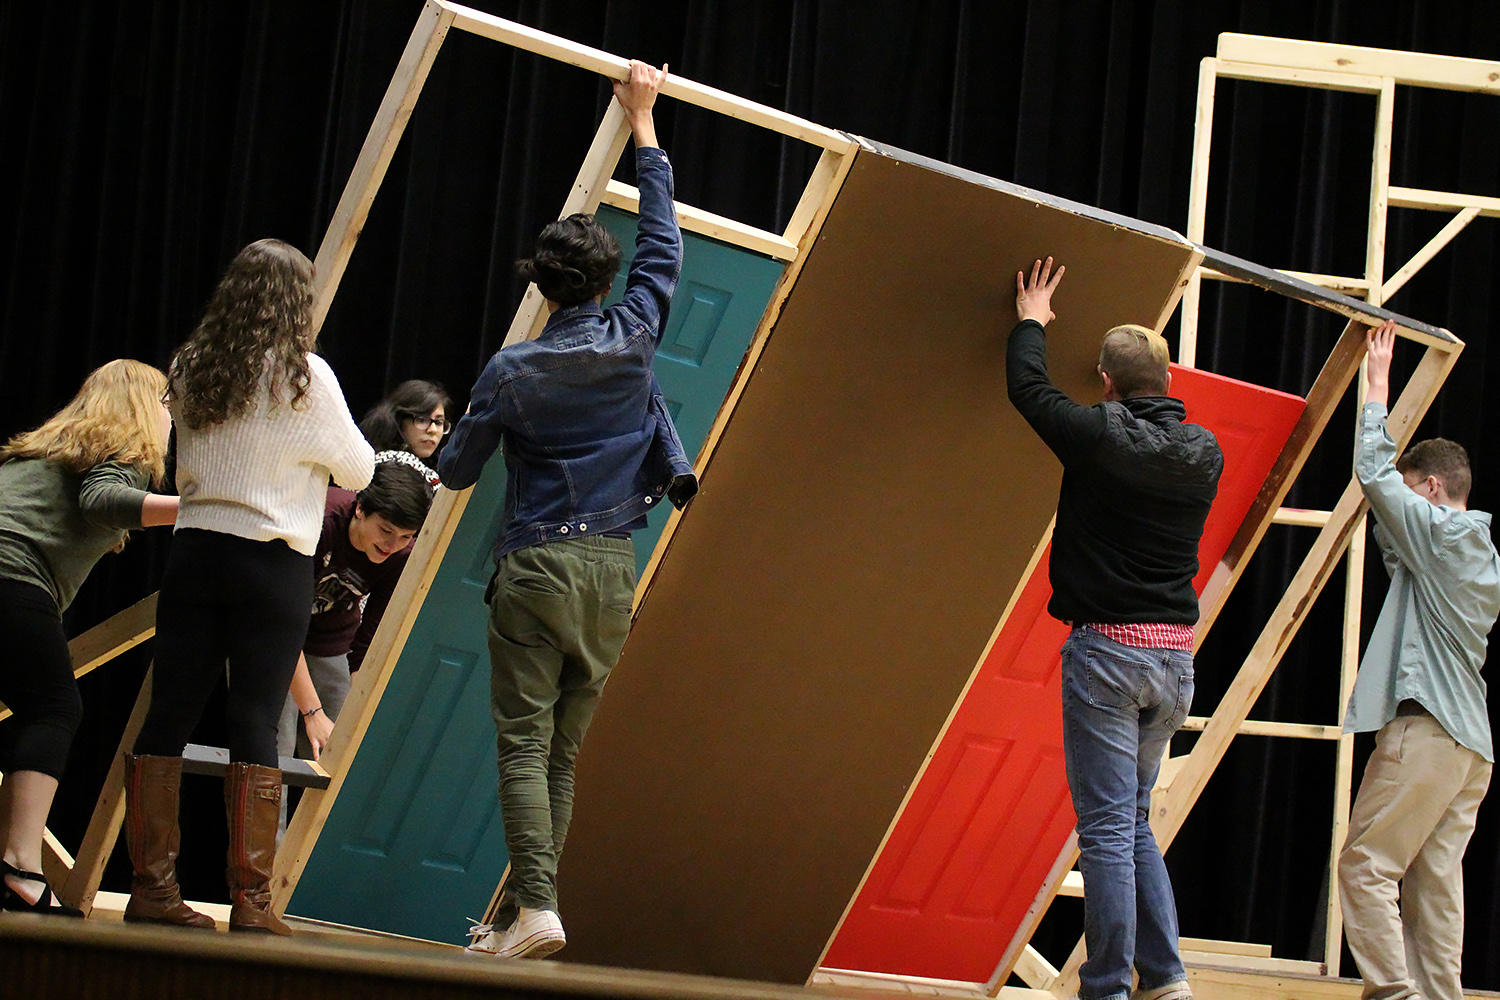 Director Noah Pligge and cast members put a wall in place during a recent rehearsal.